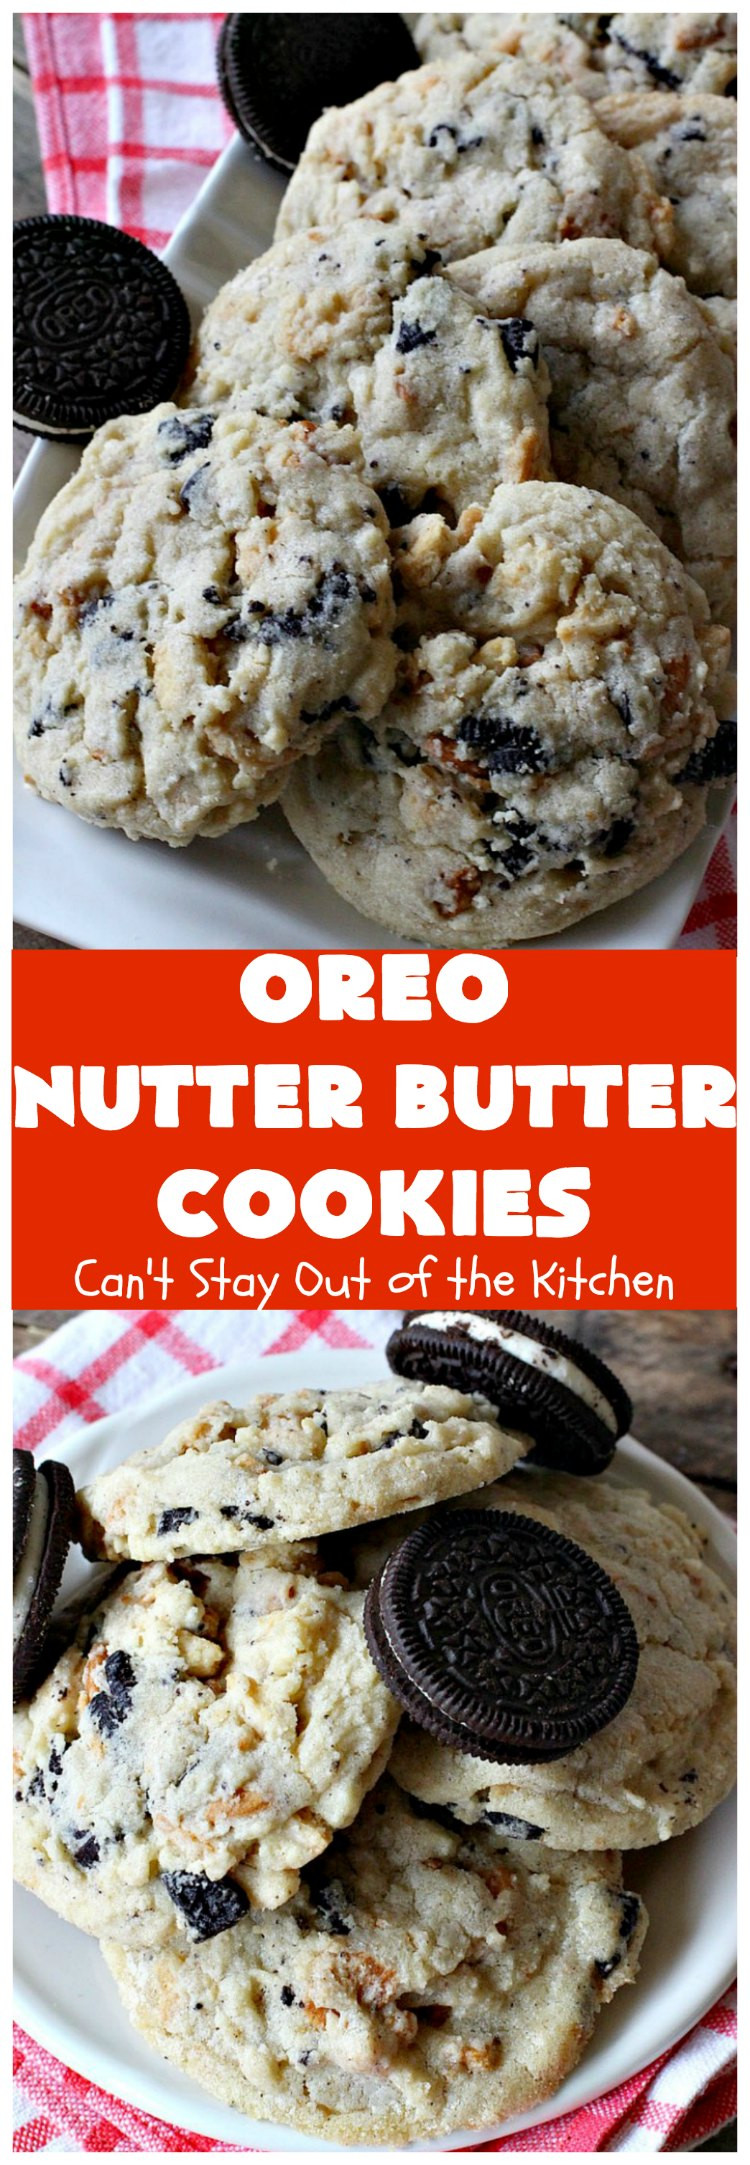 Nutter Butter Dessert  Oreo Nutter Butter Cookies – Can t Stay Out of the Kitchen